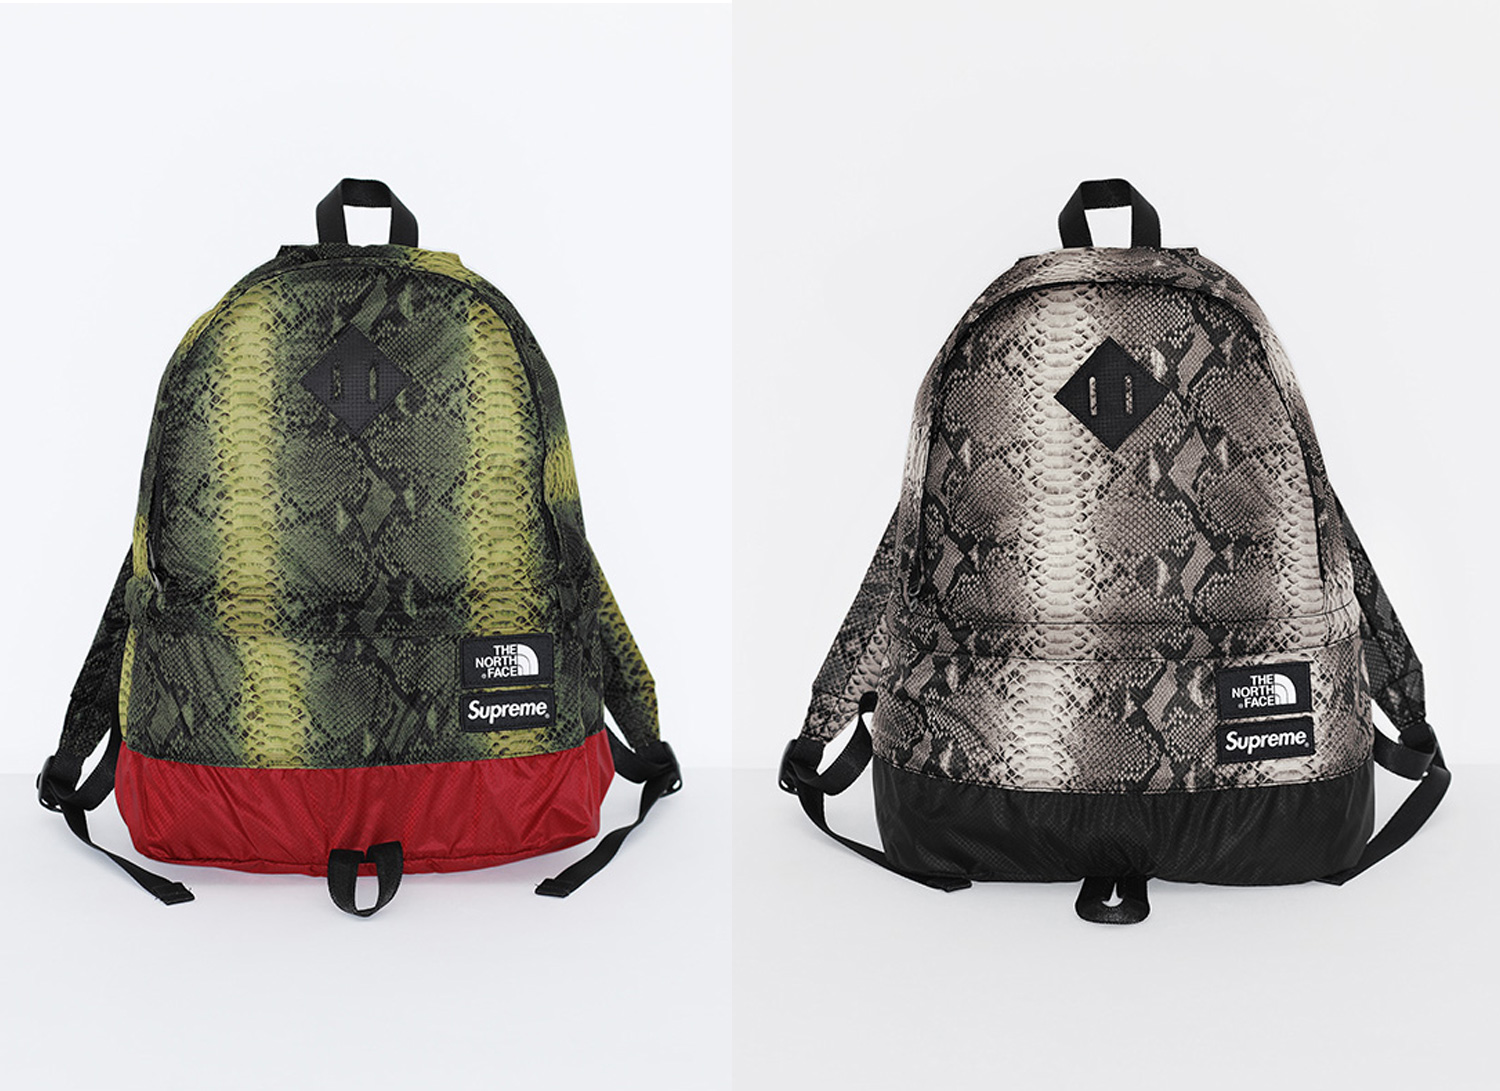 Supreme®/The North Face® Snakeskin Lightweight Day Pack